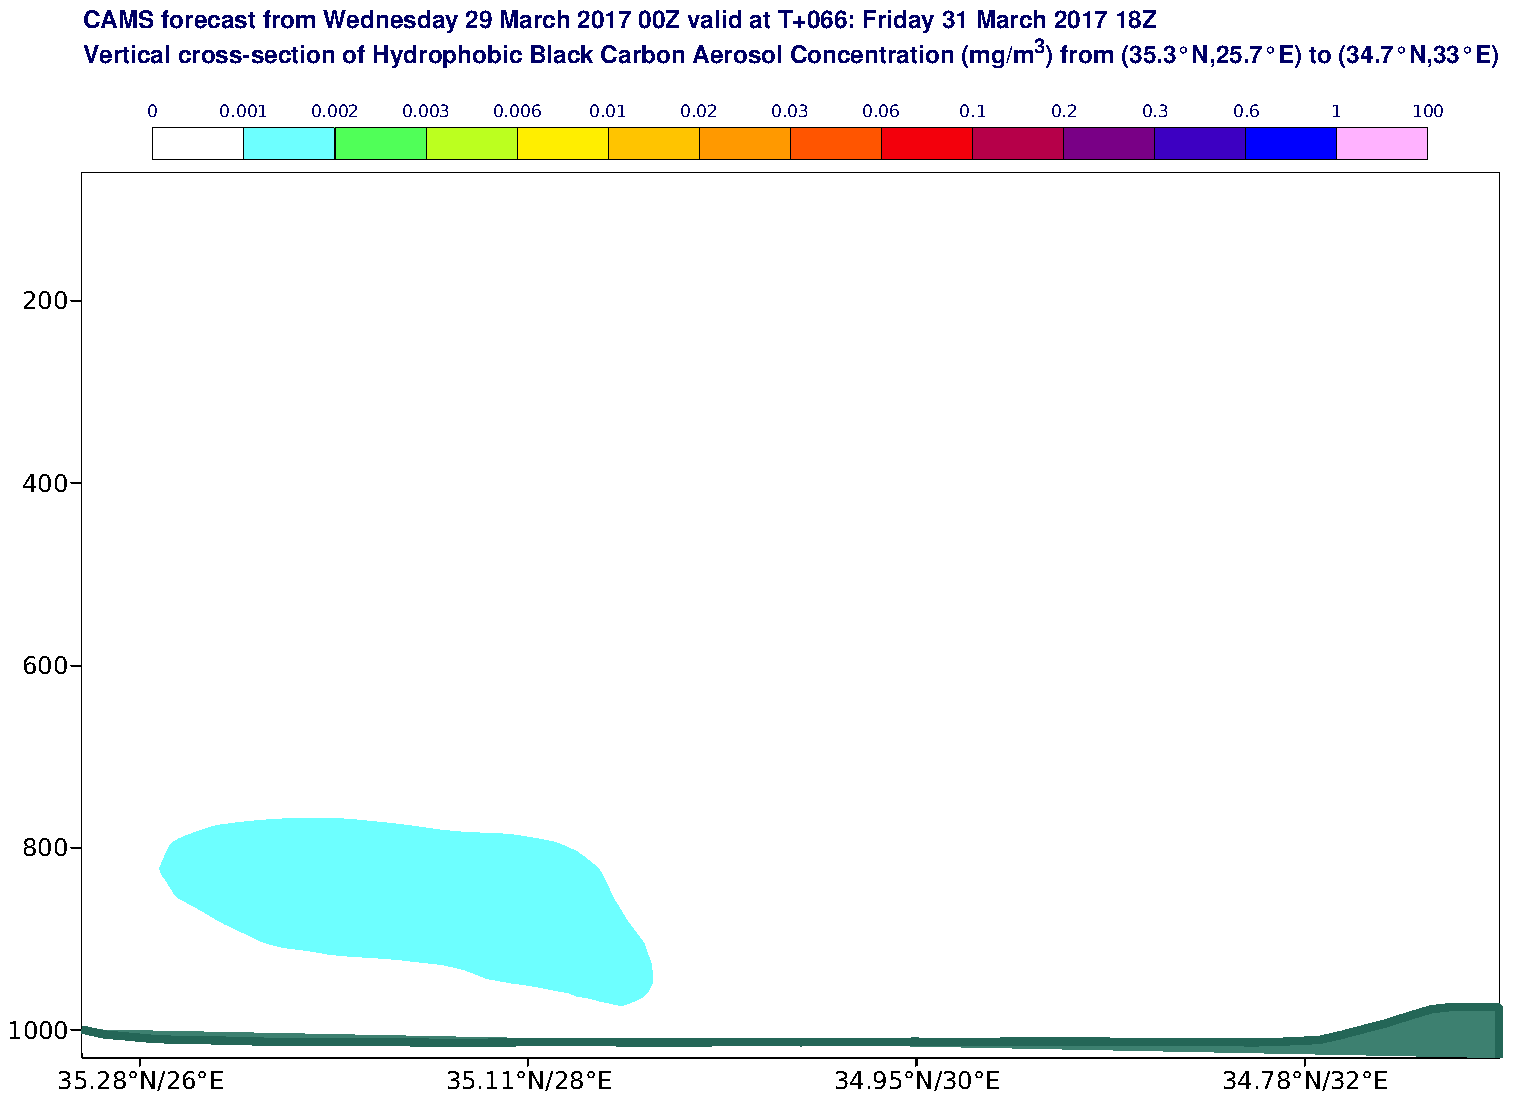 Vertical cross-section of Hydrophobic Black Carbon Aerosol Concentration (mg/m3) valid at T66 - 2017-03-31 18:00